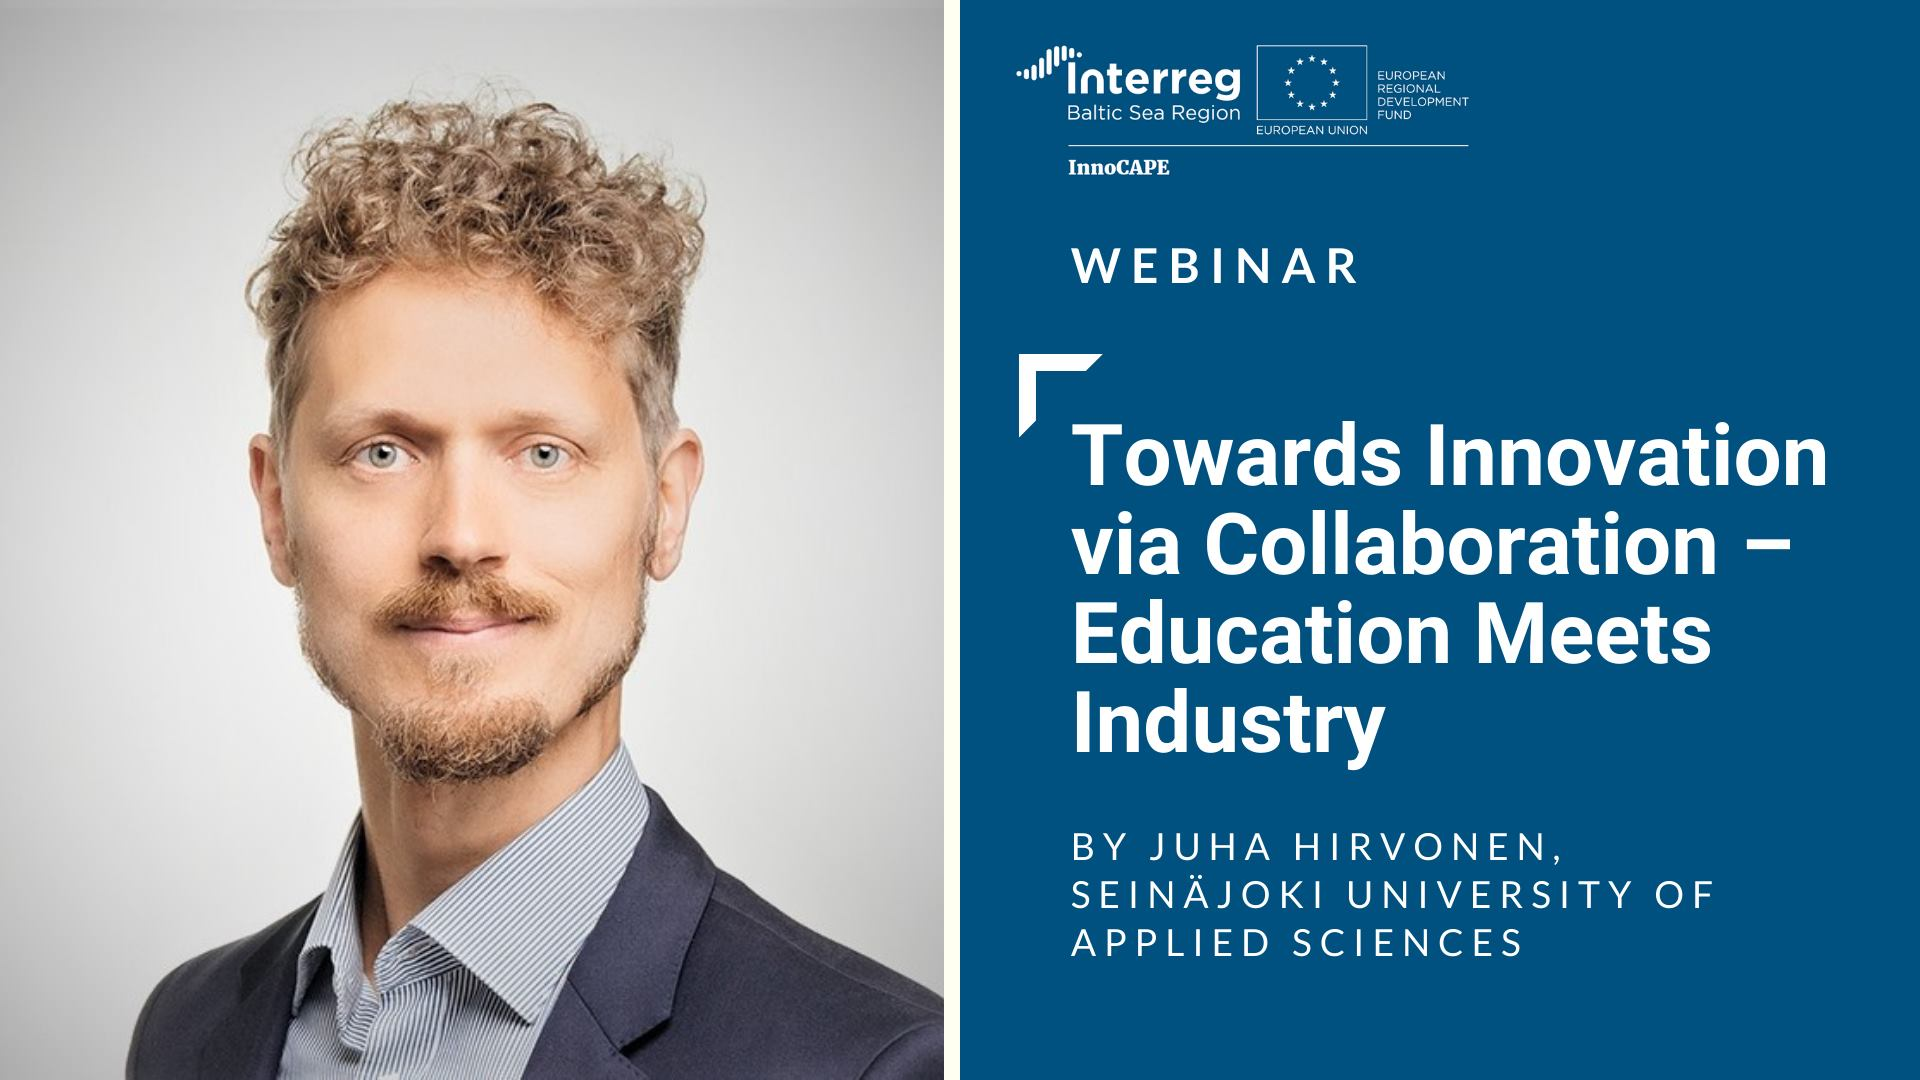 InnoCAPE-digital-innovation-webinar